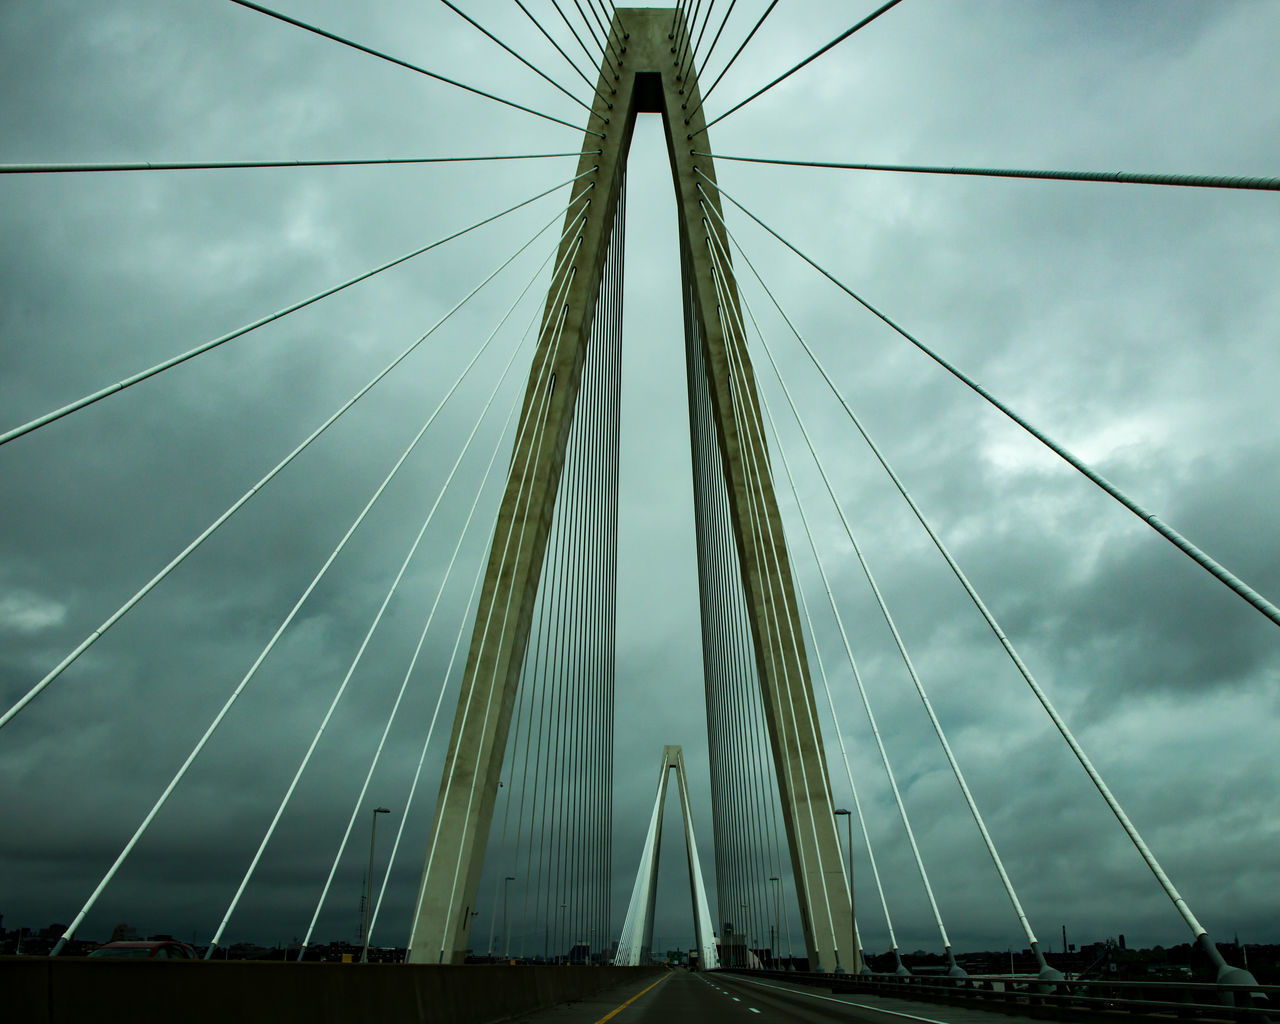 EyeEmNewHere Sky Suspension Bridge Cloudy Artofvisuals Visualsoflife Theimaged Fatalframes IshootRaw Canon Canonphotography Lightroom Primeshots Art Artistic Photo Photography TheCreatorClass Createcommune Shoot2kill Agameoftones Create Bridge Picoftheday Cable EyeEmNewHere